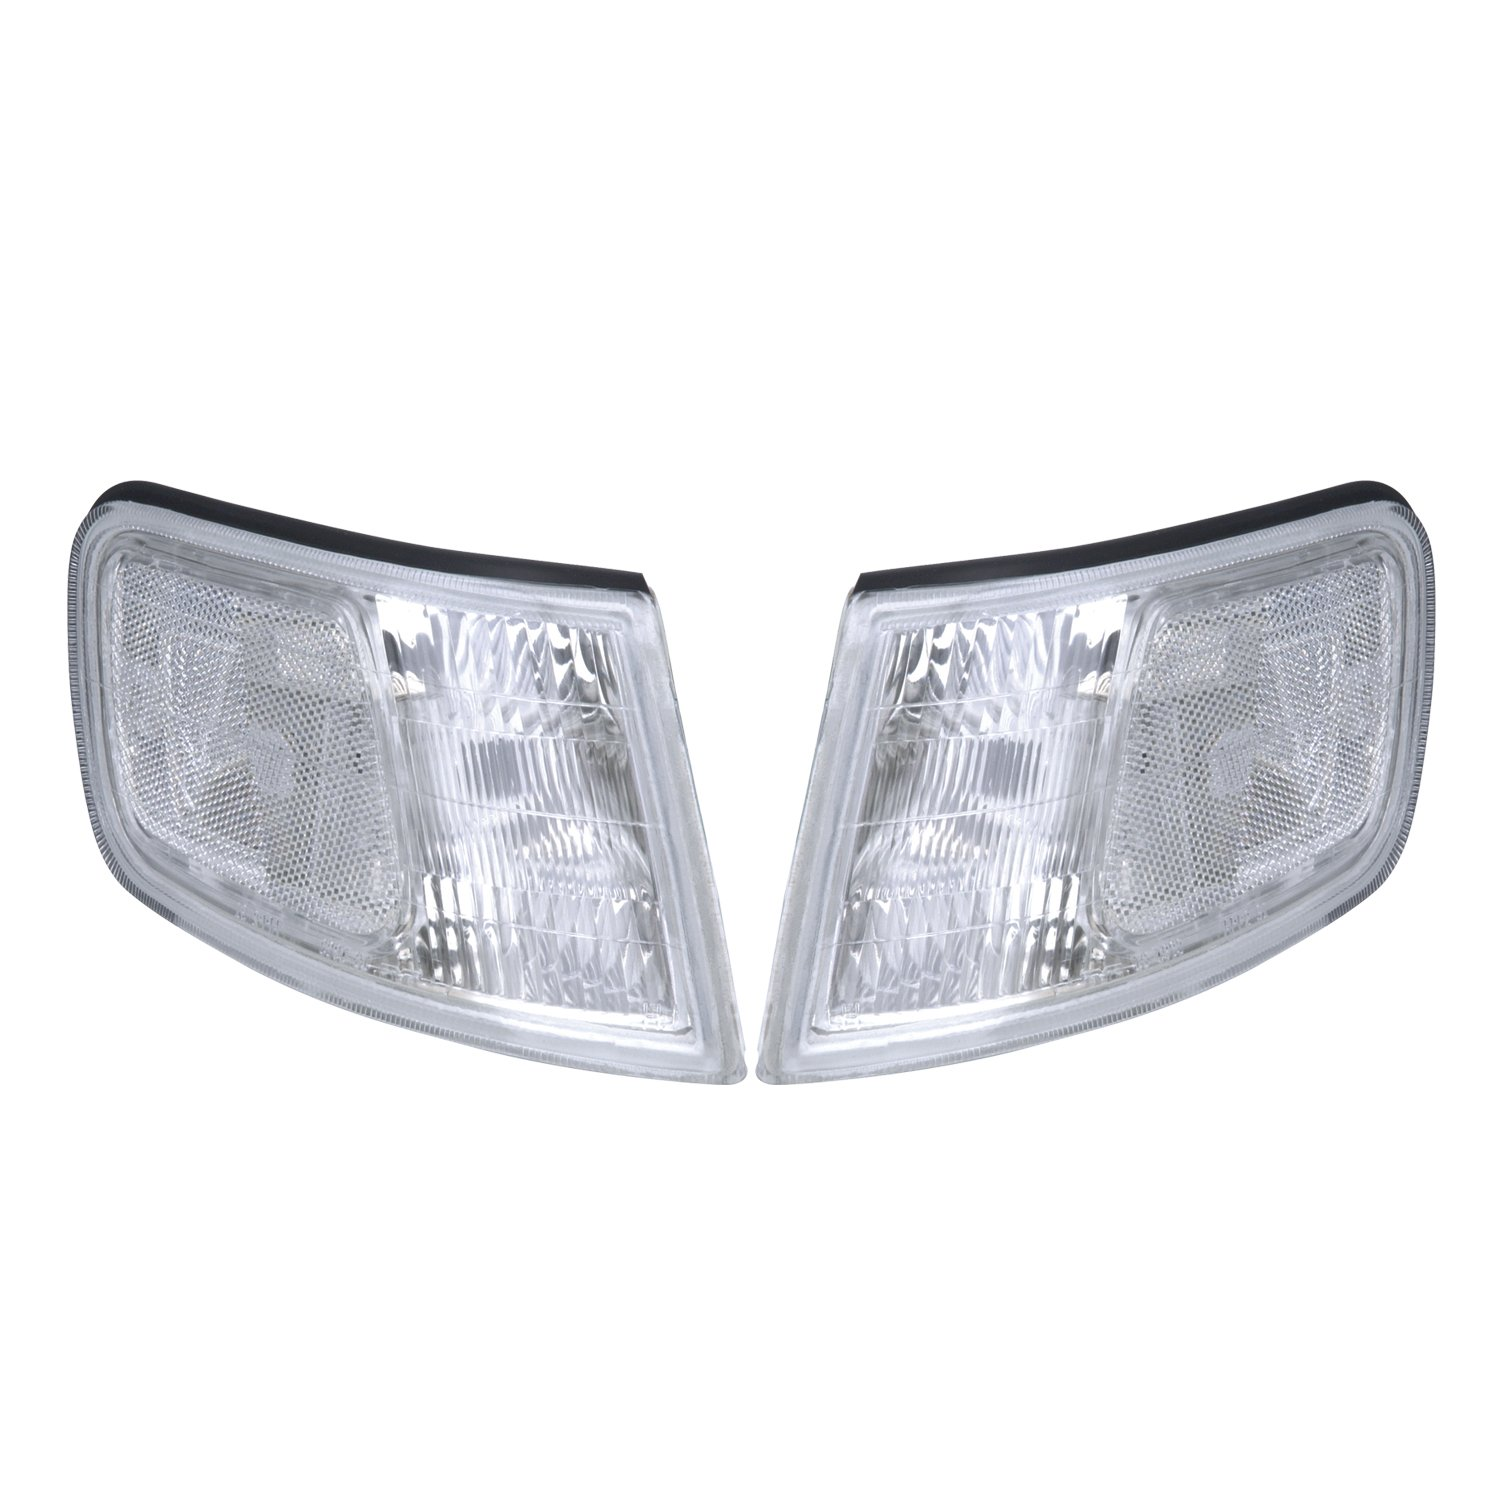 7168wBw8T8L._SL1500_ amazon com apc 403062cl honda accord parking light and side  at bayanpartner.co